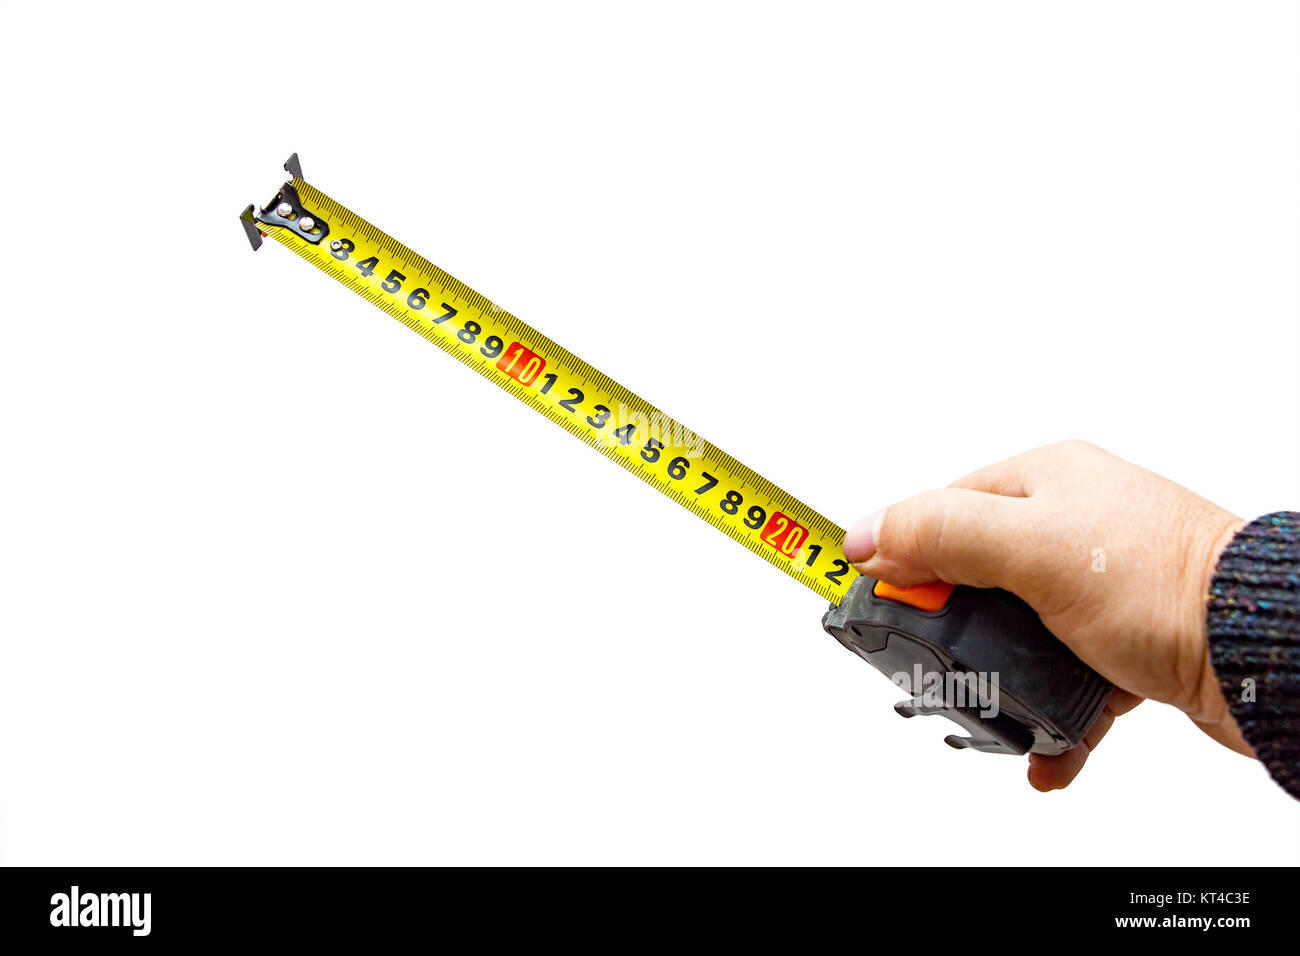 Hand with a tape measure on white - Stock Image